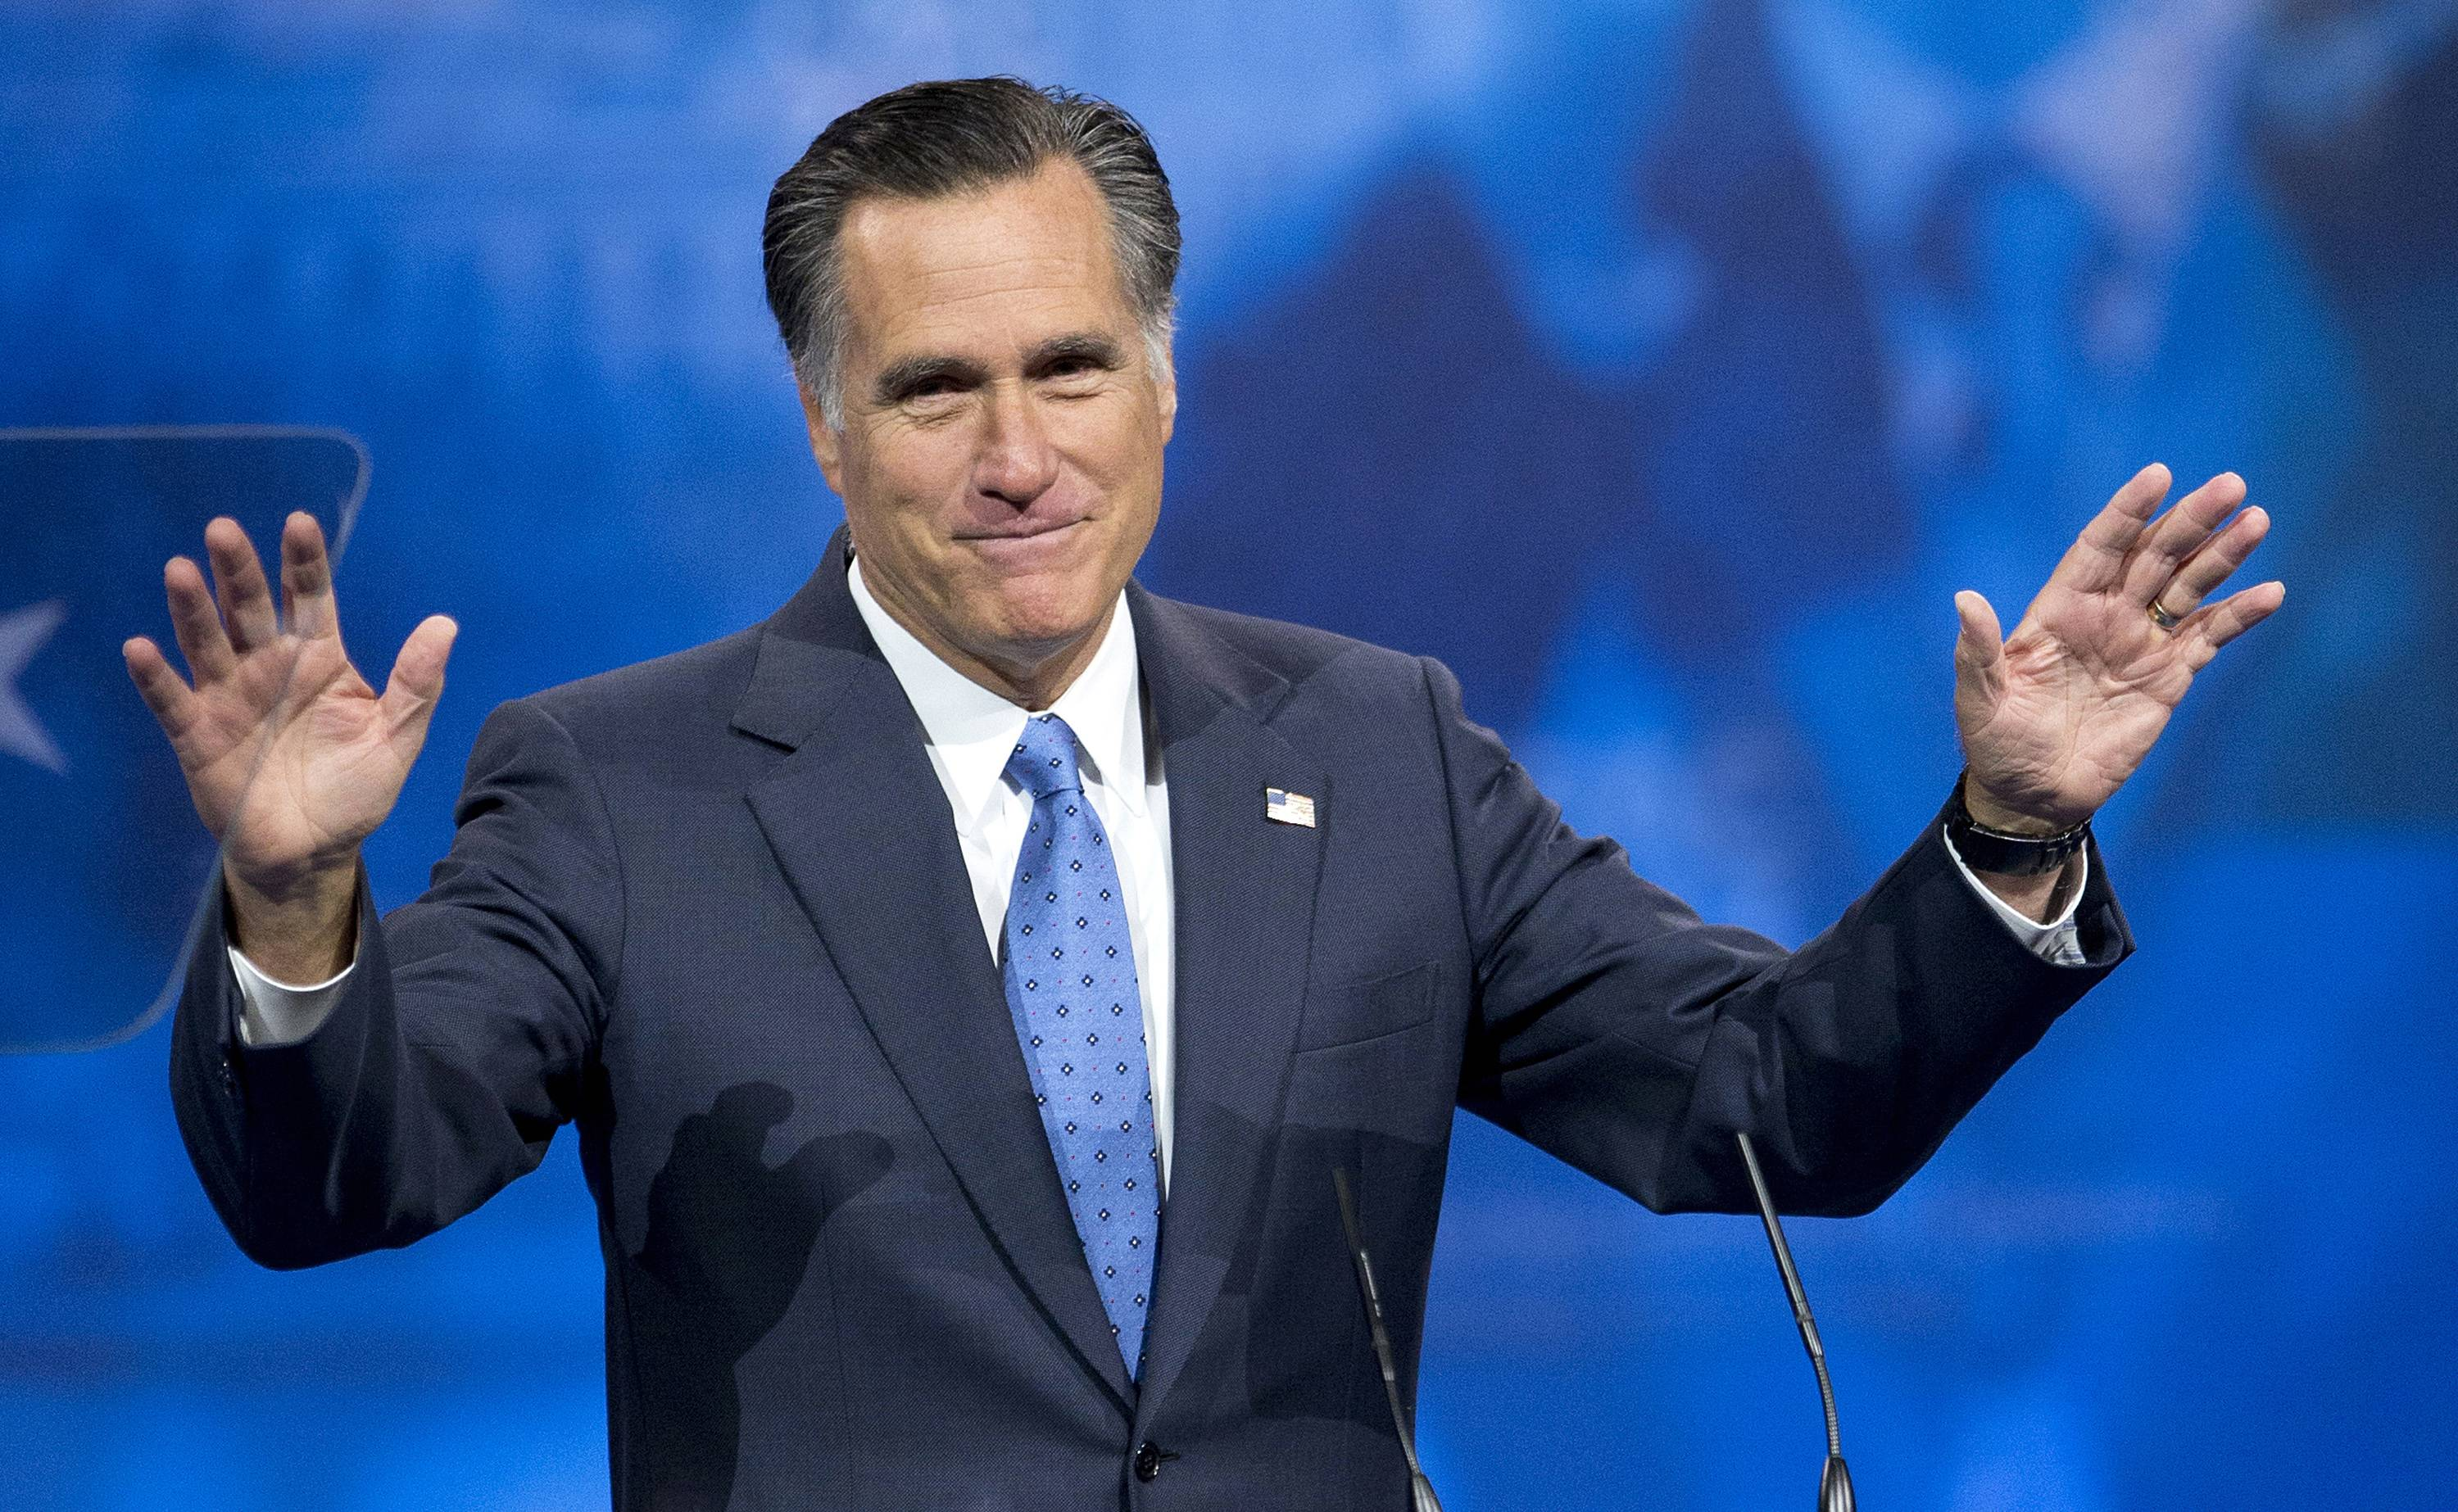 Mitt Romney insists he's not running for president a third time, but he is campaigning again in New Hampshire. The former Republican presidential nominee is set to endorse Senate candidate Scott Brown on July 2, 2014, in New Hampshire.